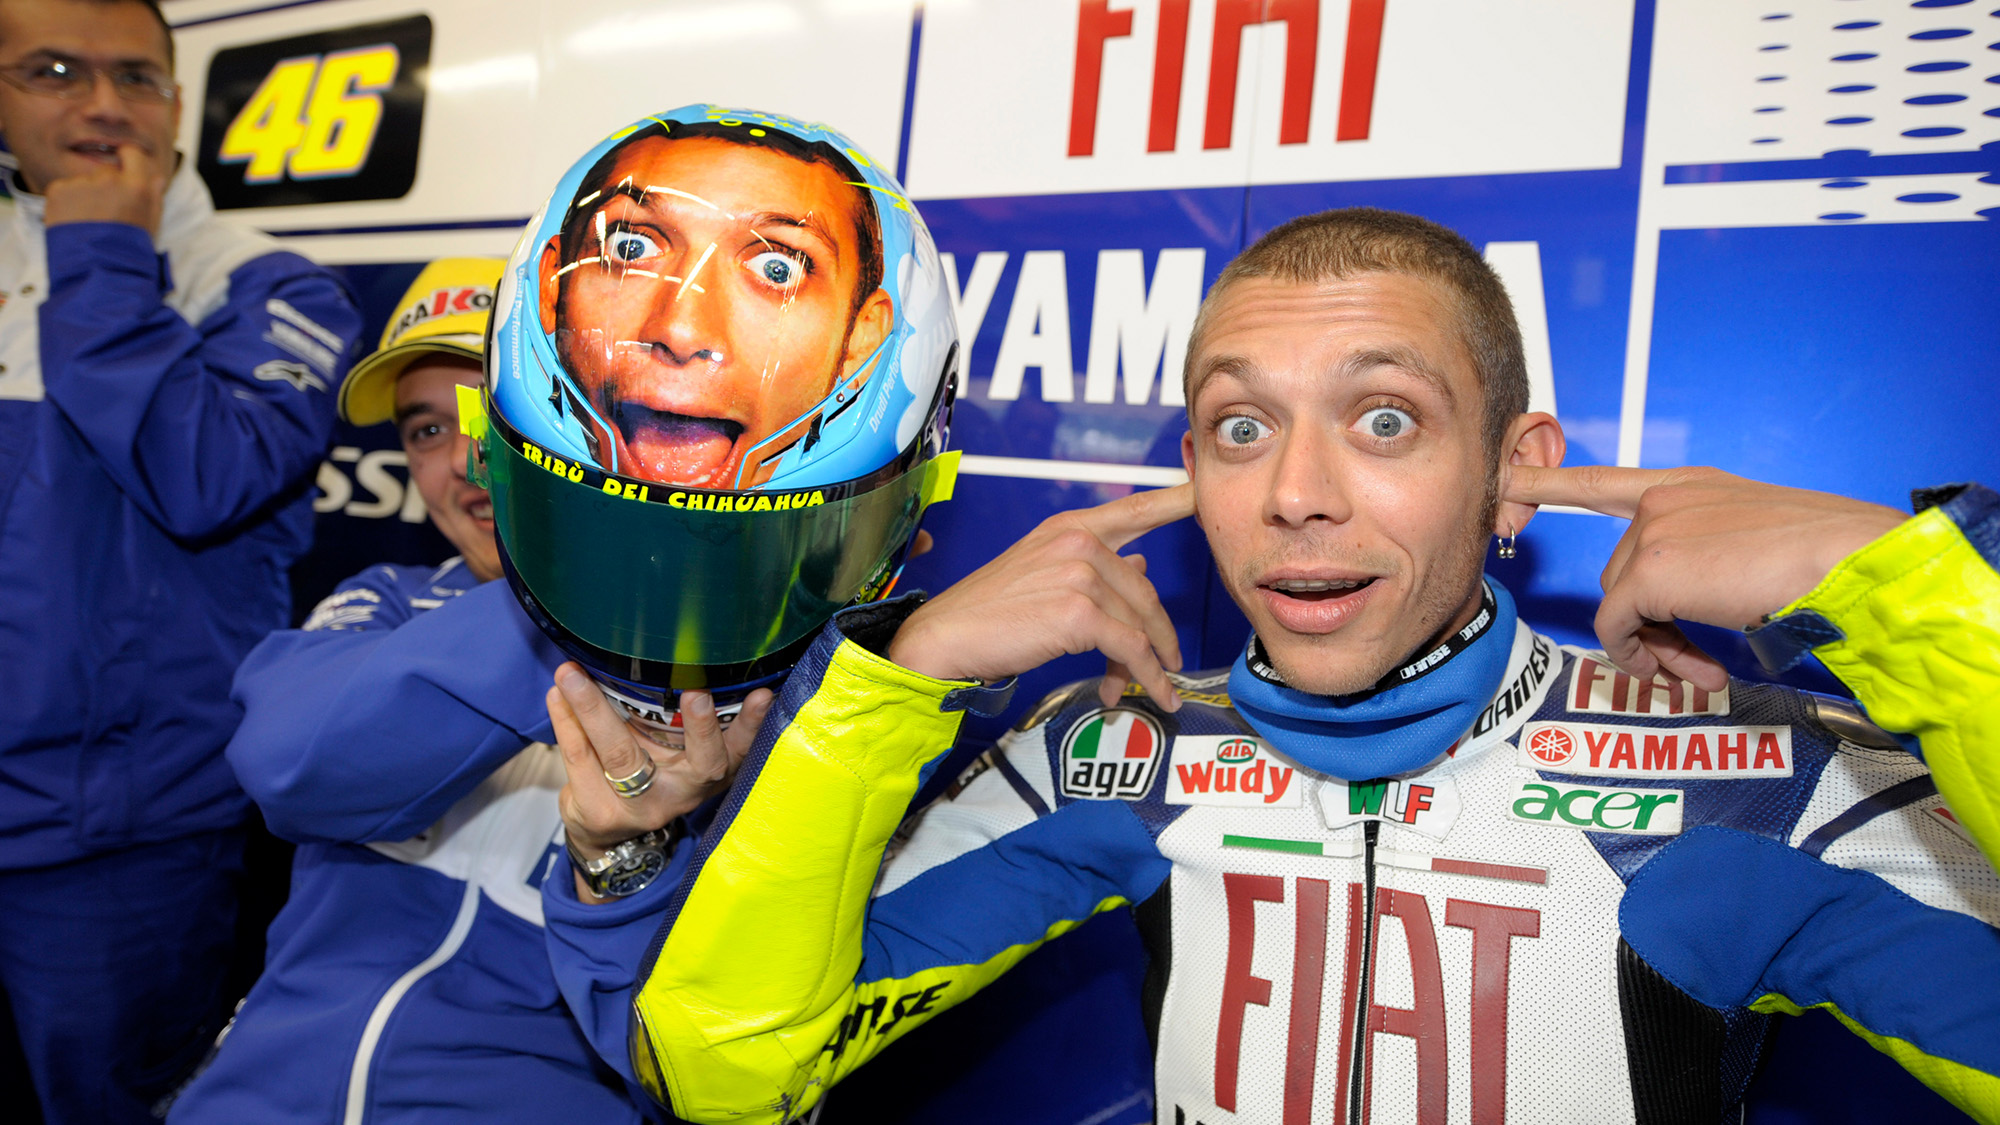 Valentino Rossi alongside a helmet with his face at Mugello in 2008